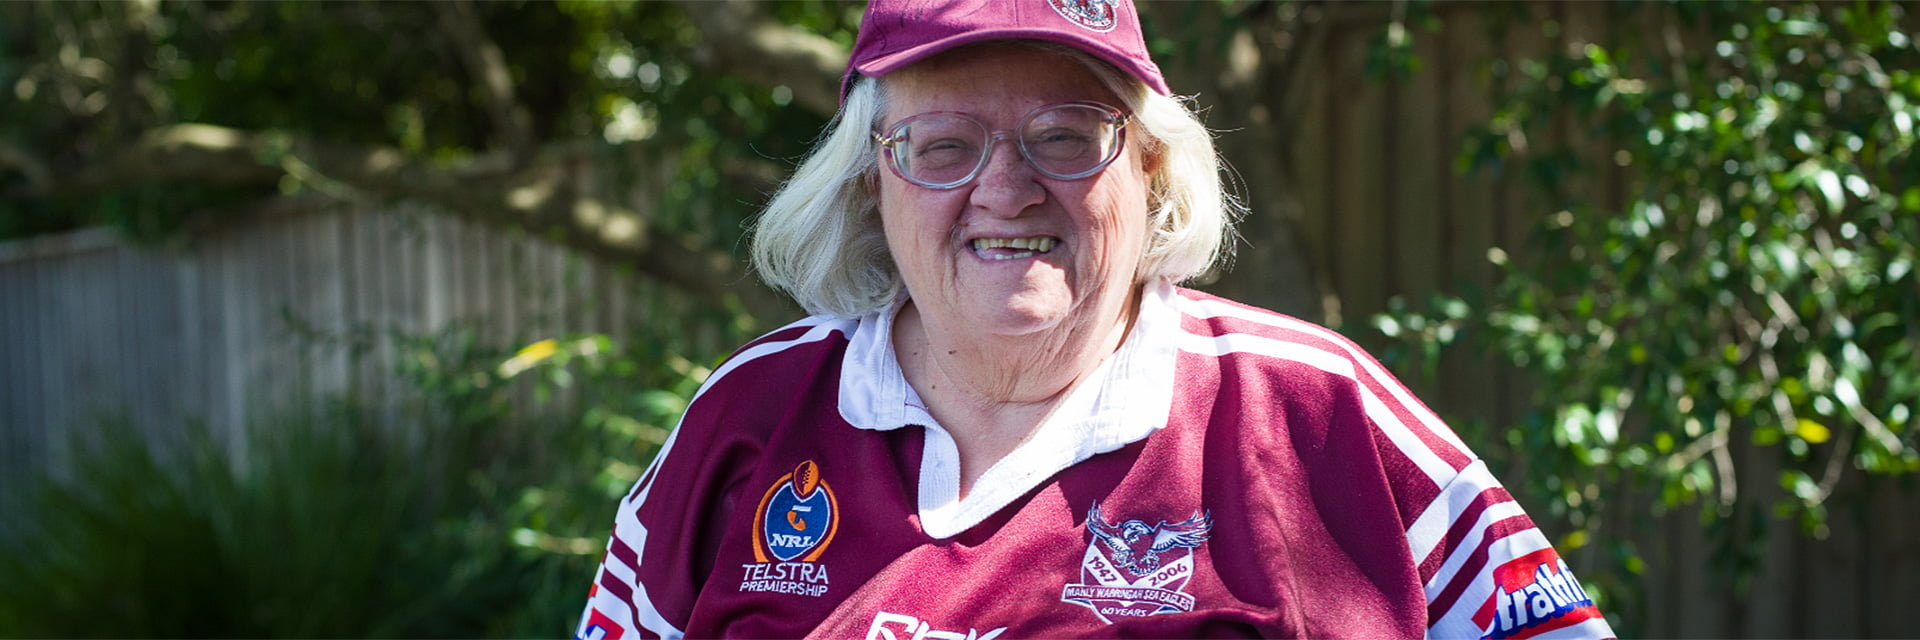 Woman with a disability wearinga Manly Sea Eagles jersey and standing outside